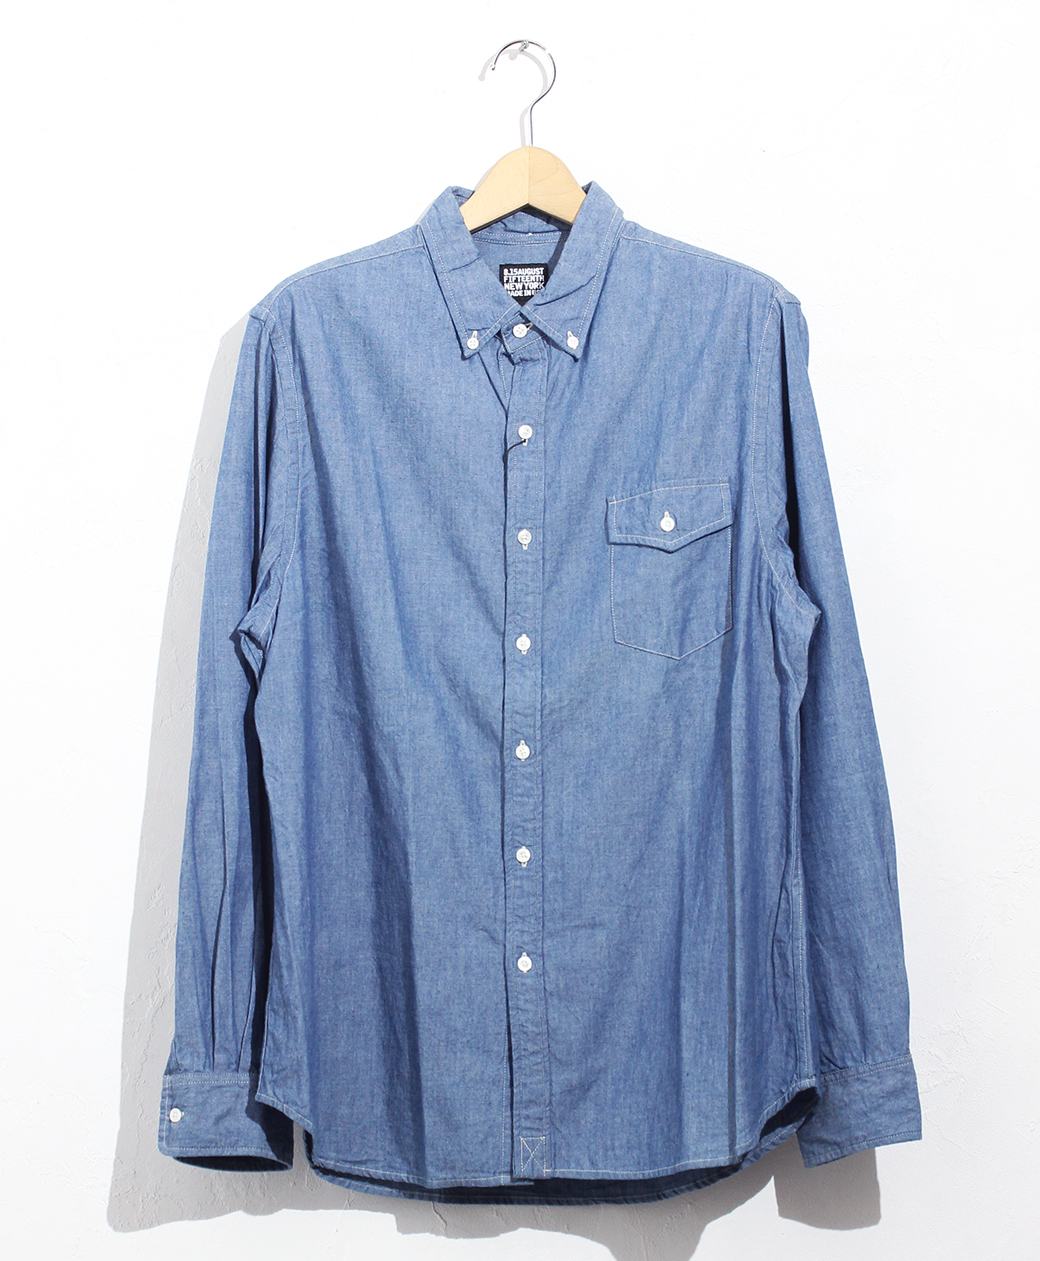 2020AW COLLECTION SALE !! 8.15 August Fifteenth NATURAL FIT B.D. L/S SHIRT(PREMIUM CHAMBRAY)